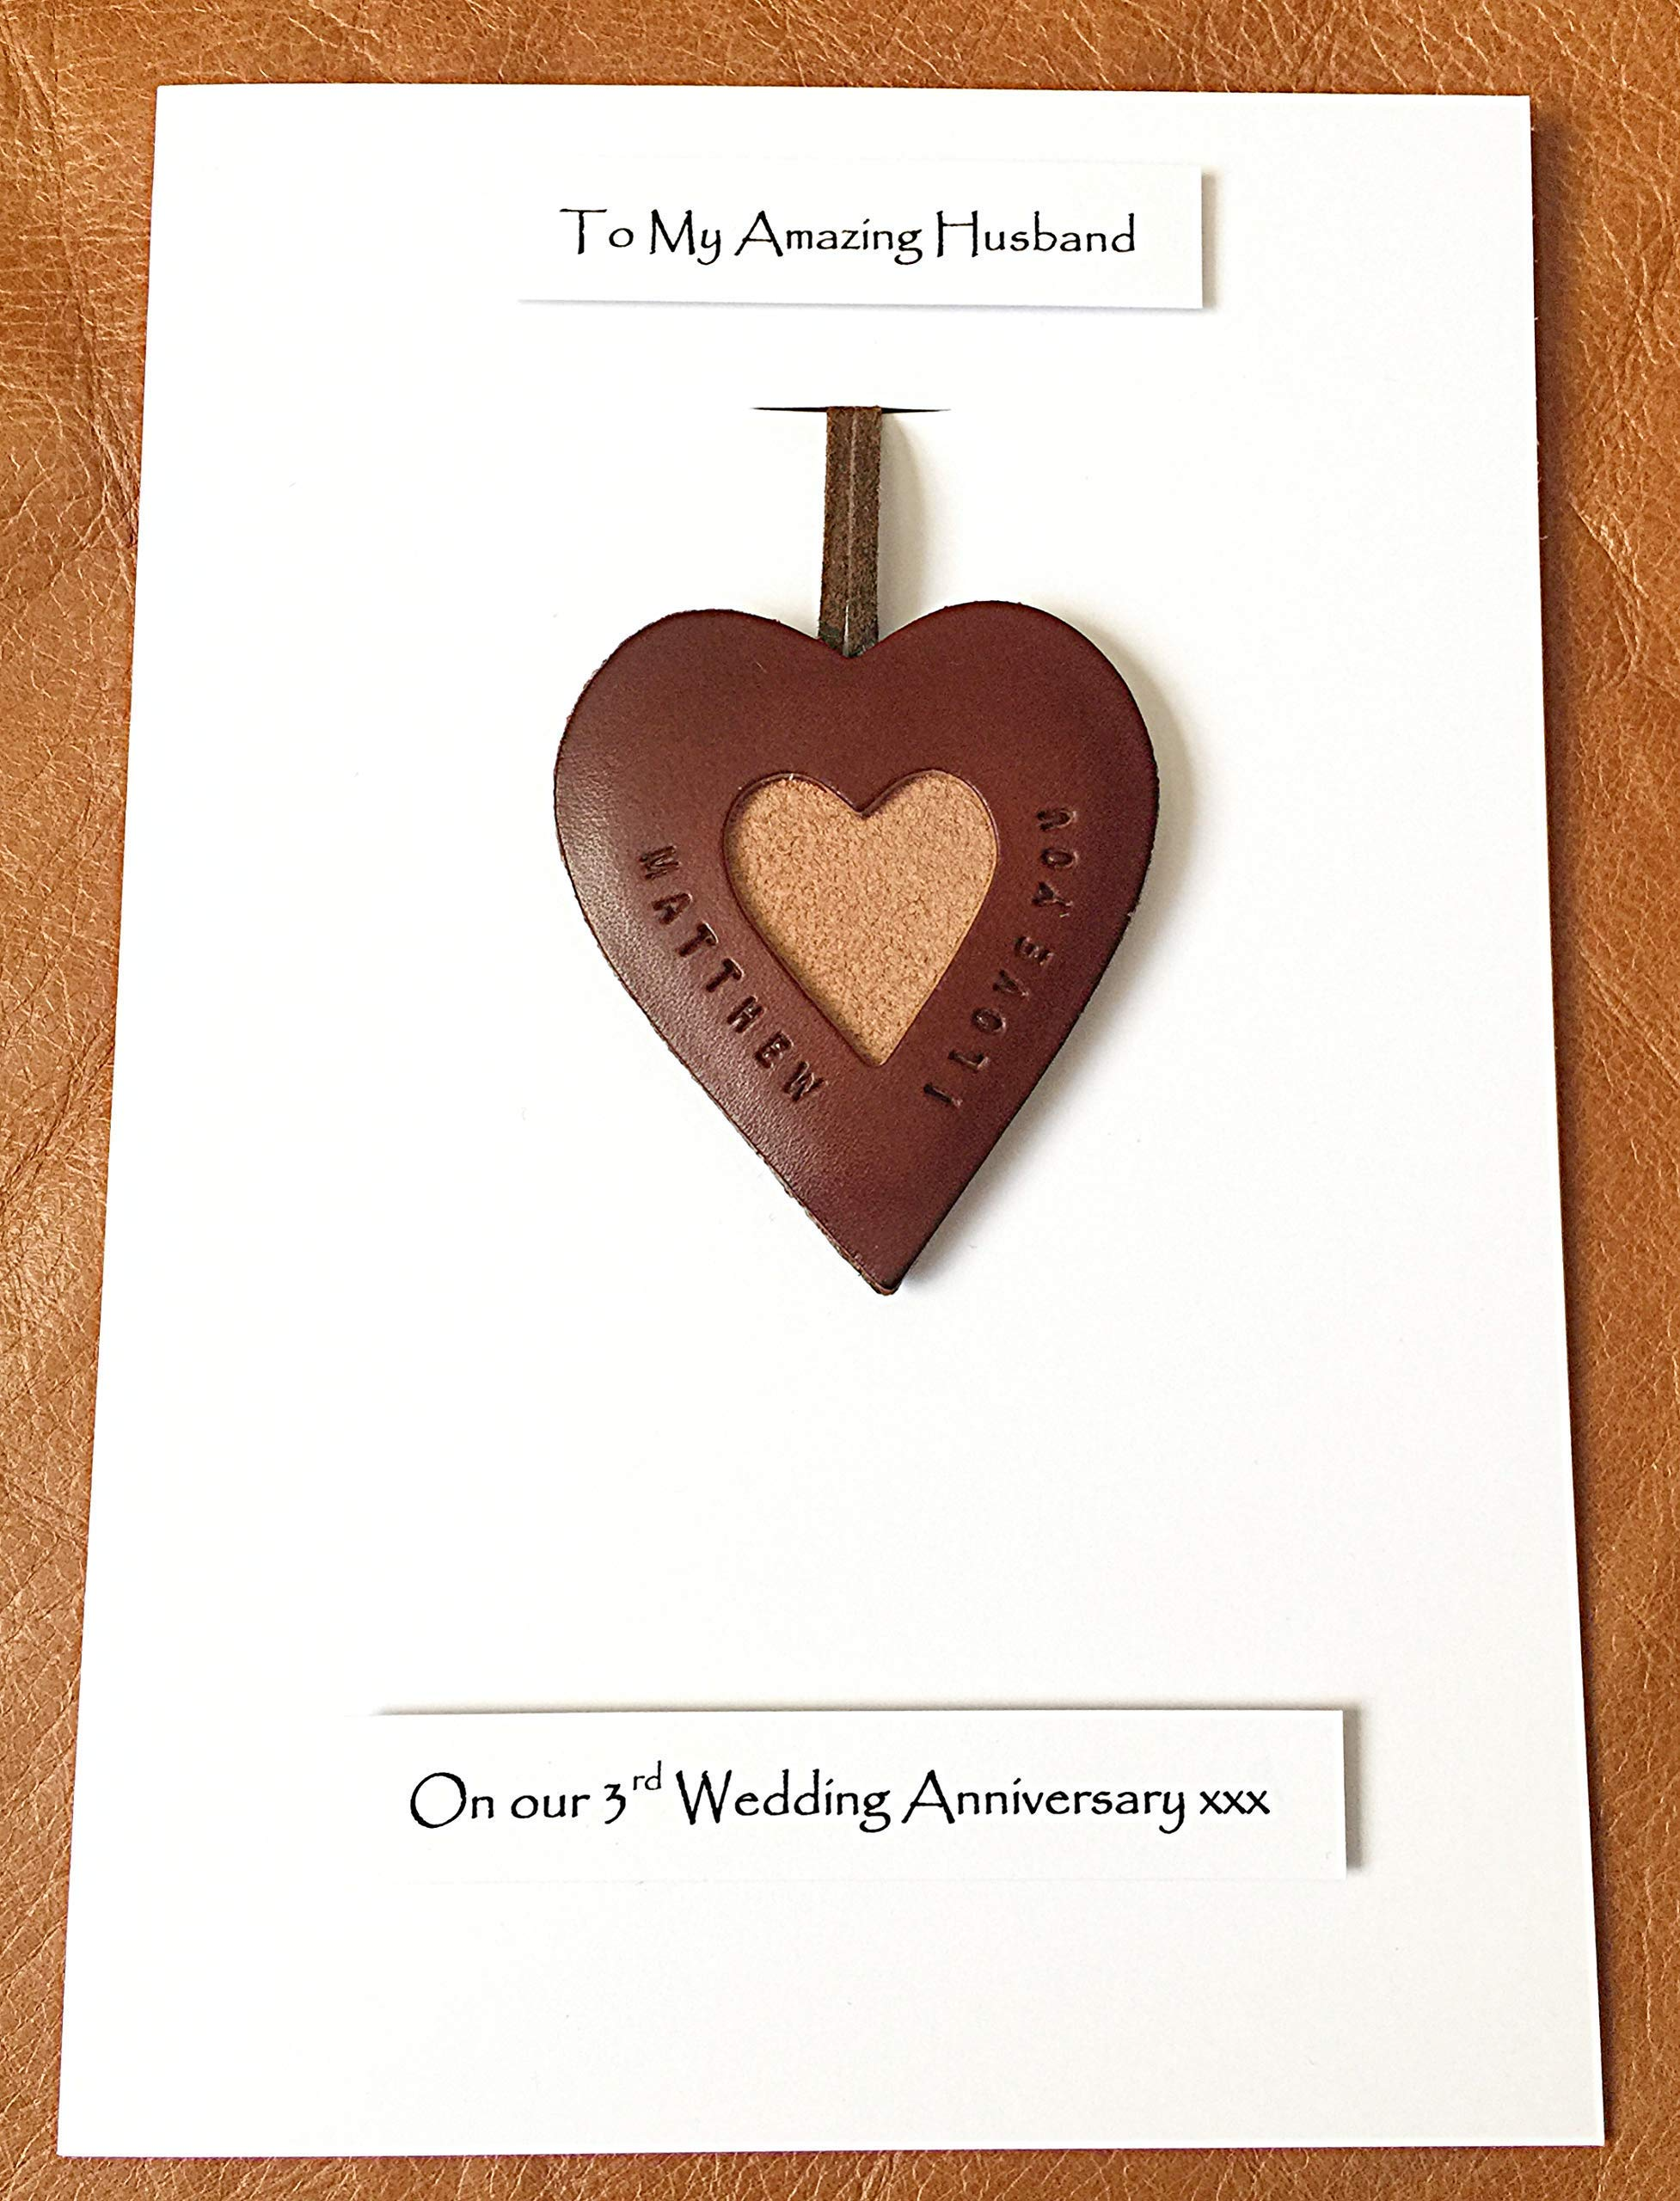 3rd Wedding Anniversary Personalised Leather Heart Leather Gift Card Husband Wife - A5 size Card - & Leather Wedding Anniversary Gifts: Amazon.co.uk